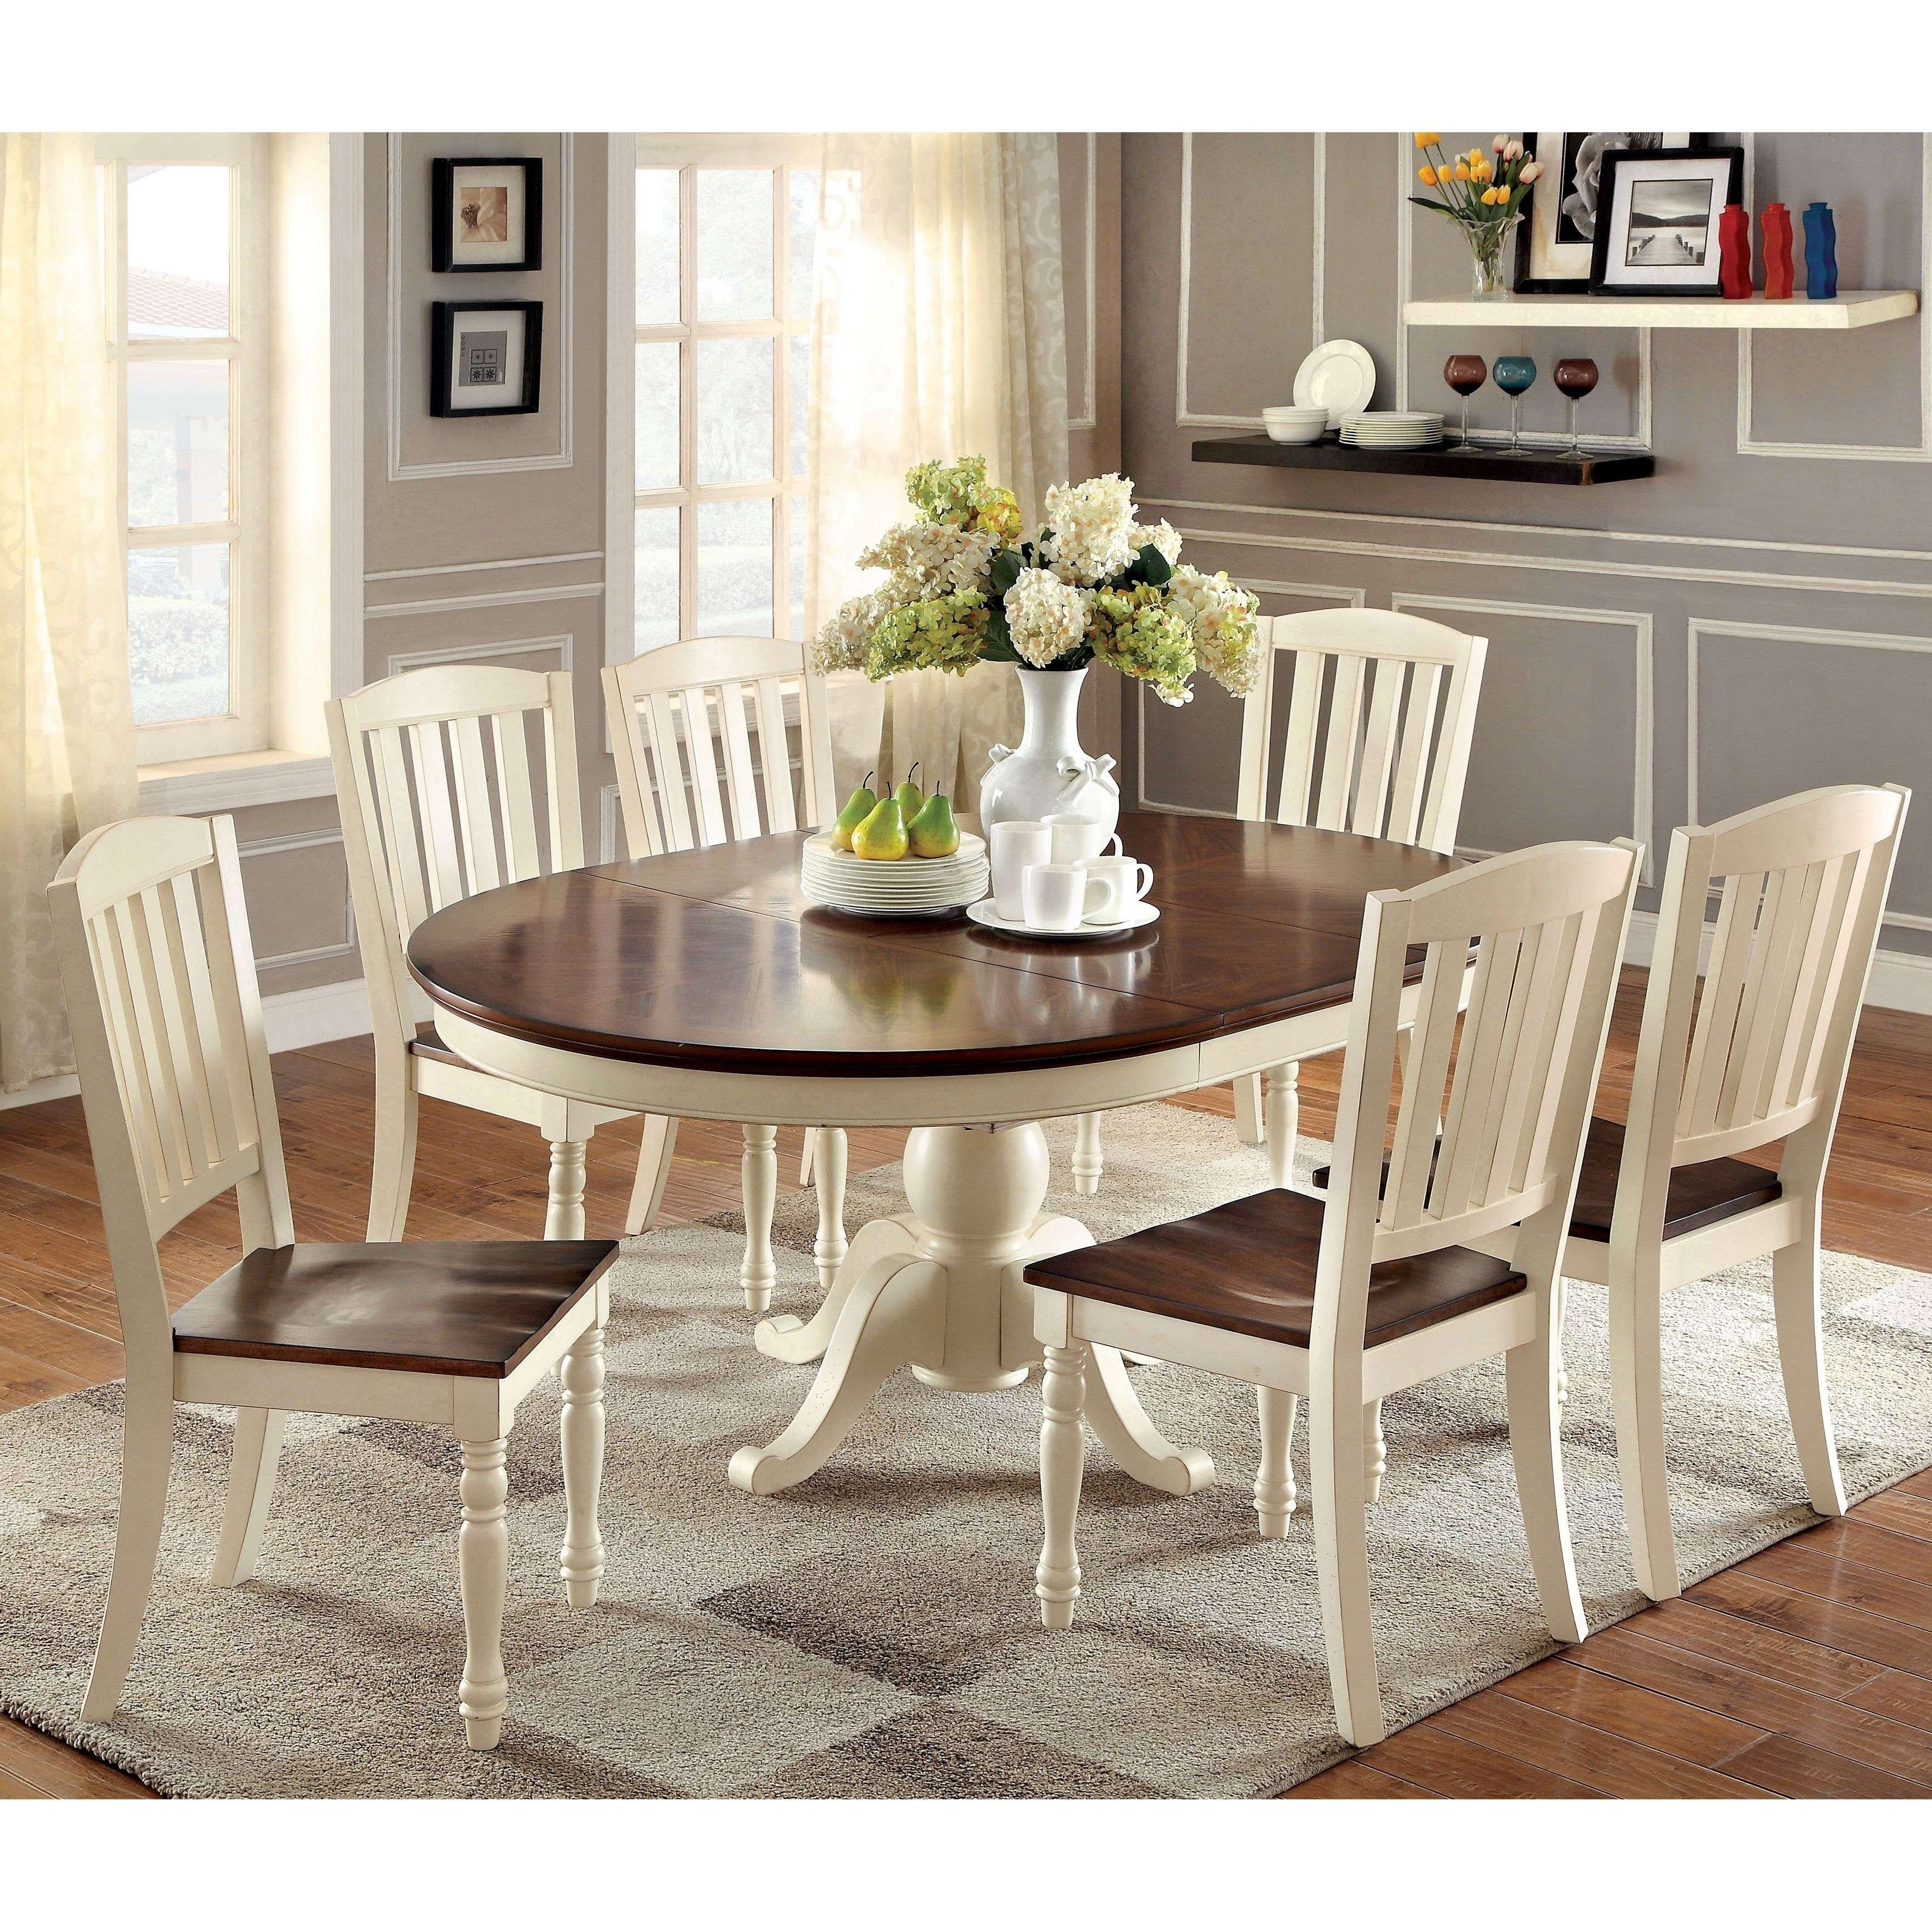 Small Round Dining Table With 4 Chairs Pertaining To Latest Small Round Dining Table For 4 Awesome Round Kitchen Table With  (View 5 of 25)